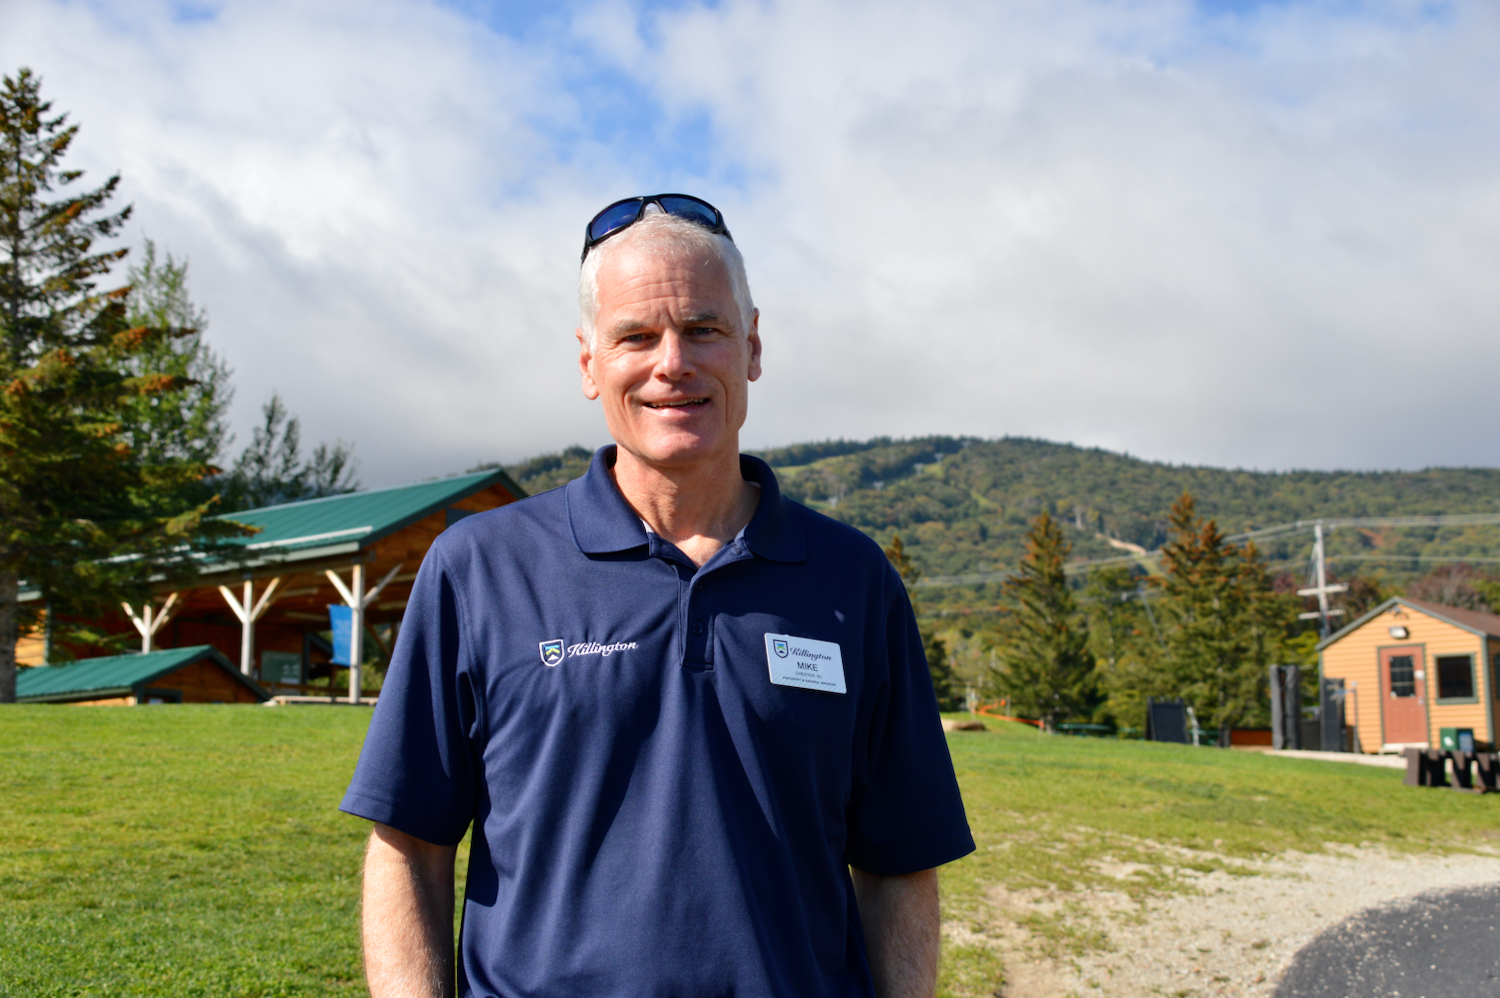 A photo of Mike Solimano, dressed in a blue sport shirt with sunglasses on his head, standing at the base of Killington ski resort.